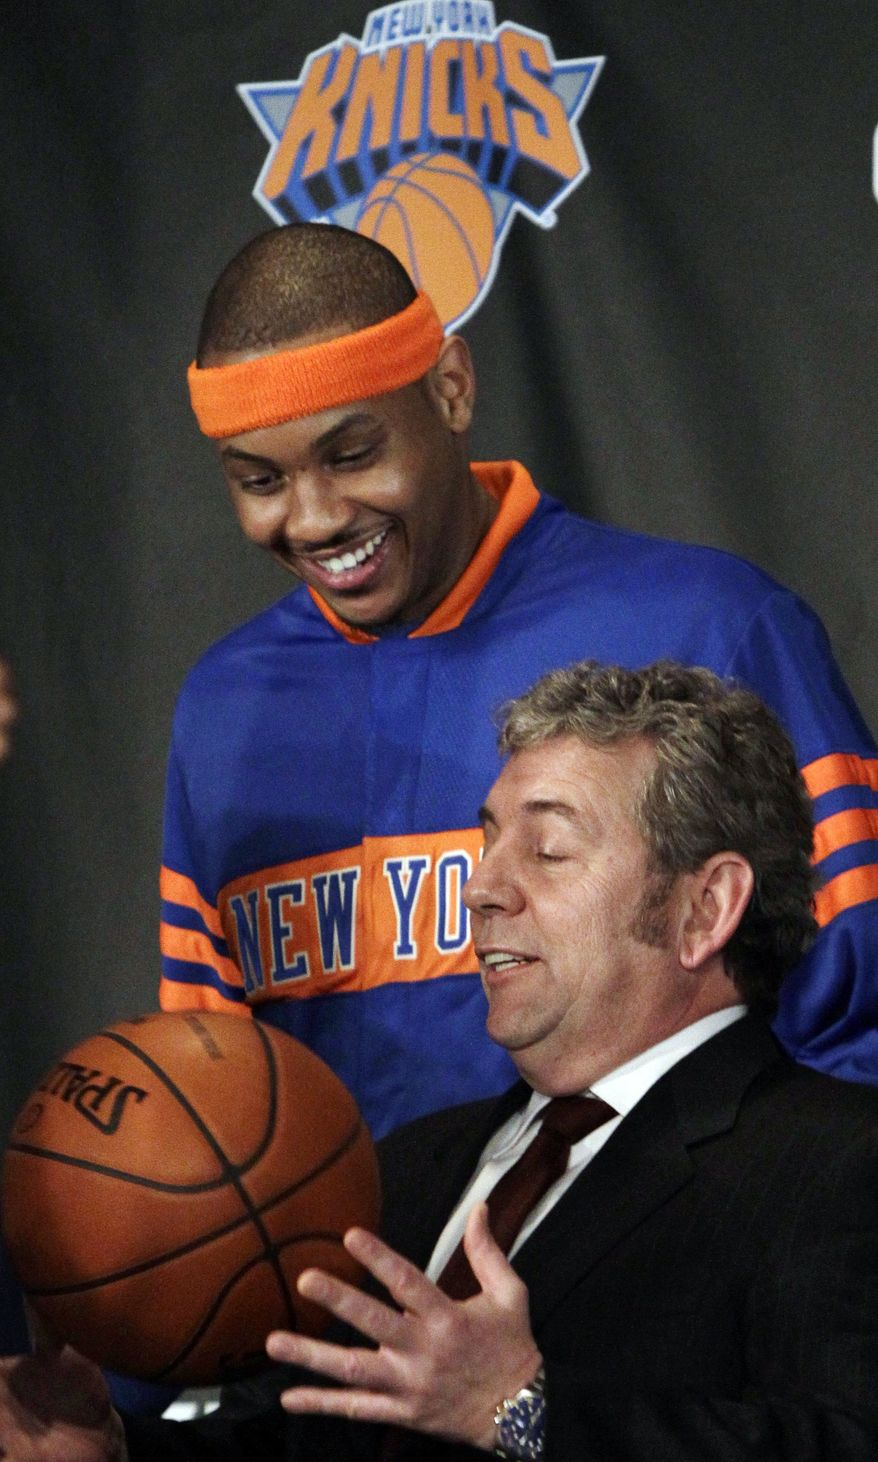 New York Knicks owner James Dolan (bottom) bounces a basketball as he poses for photographs with Carmelo Anthony, the Knicks' newest player, during a Feb. 23 introductory news conference in New York. (Associated Press)